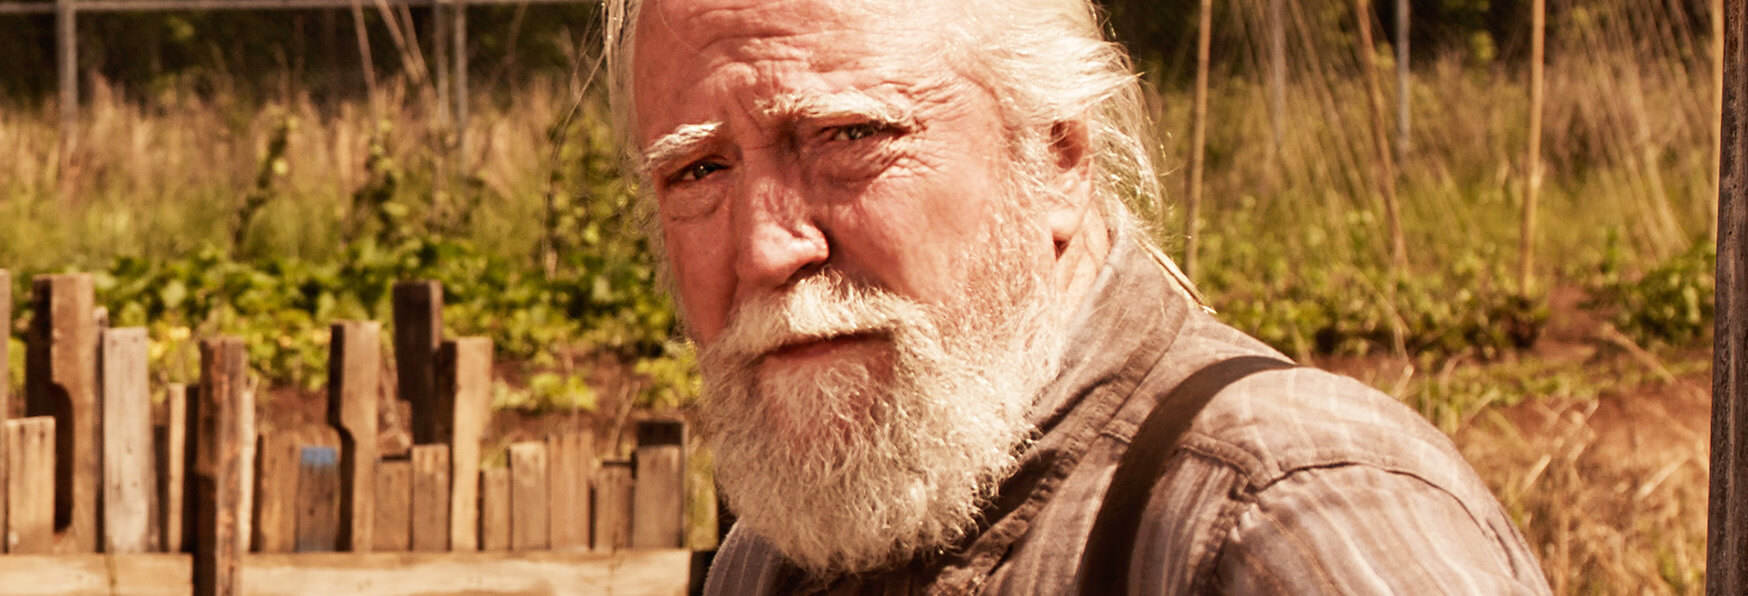 Muore Scott Wilson, Hershel Greene in The Walking Dead